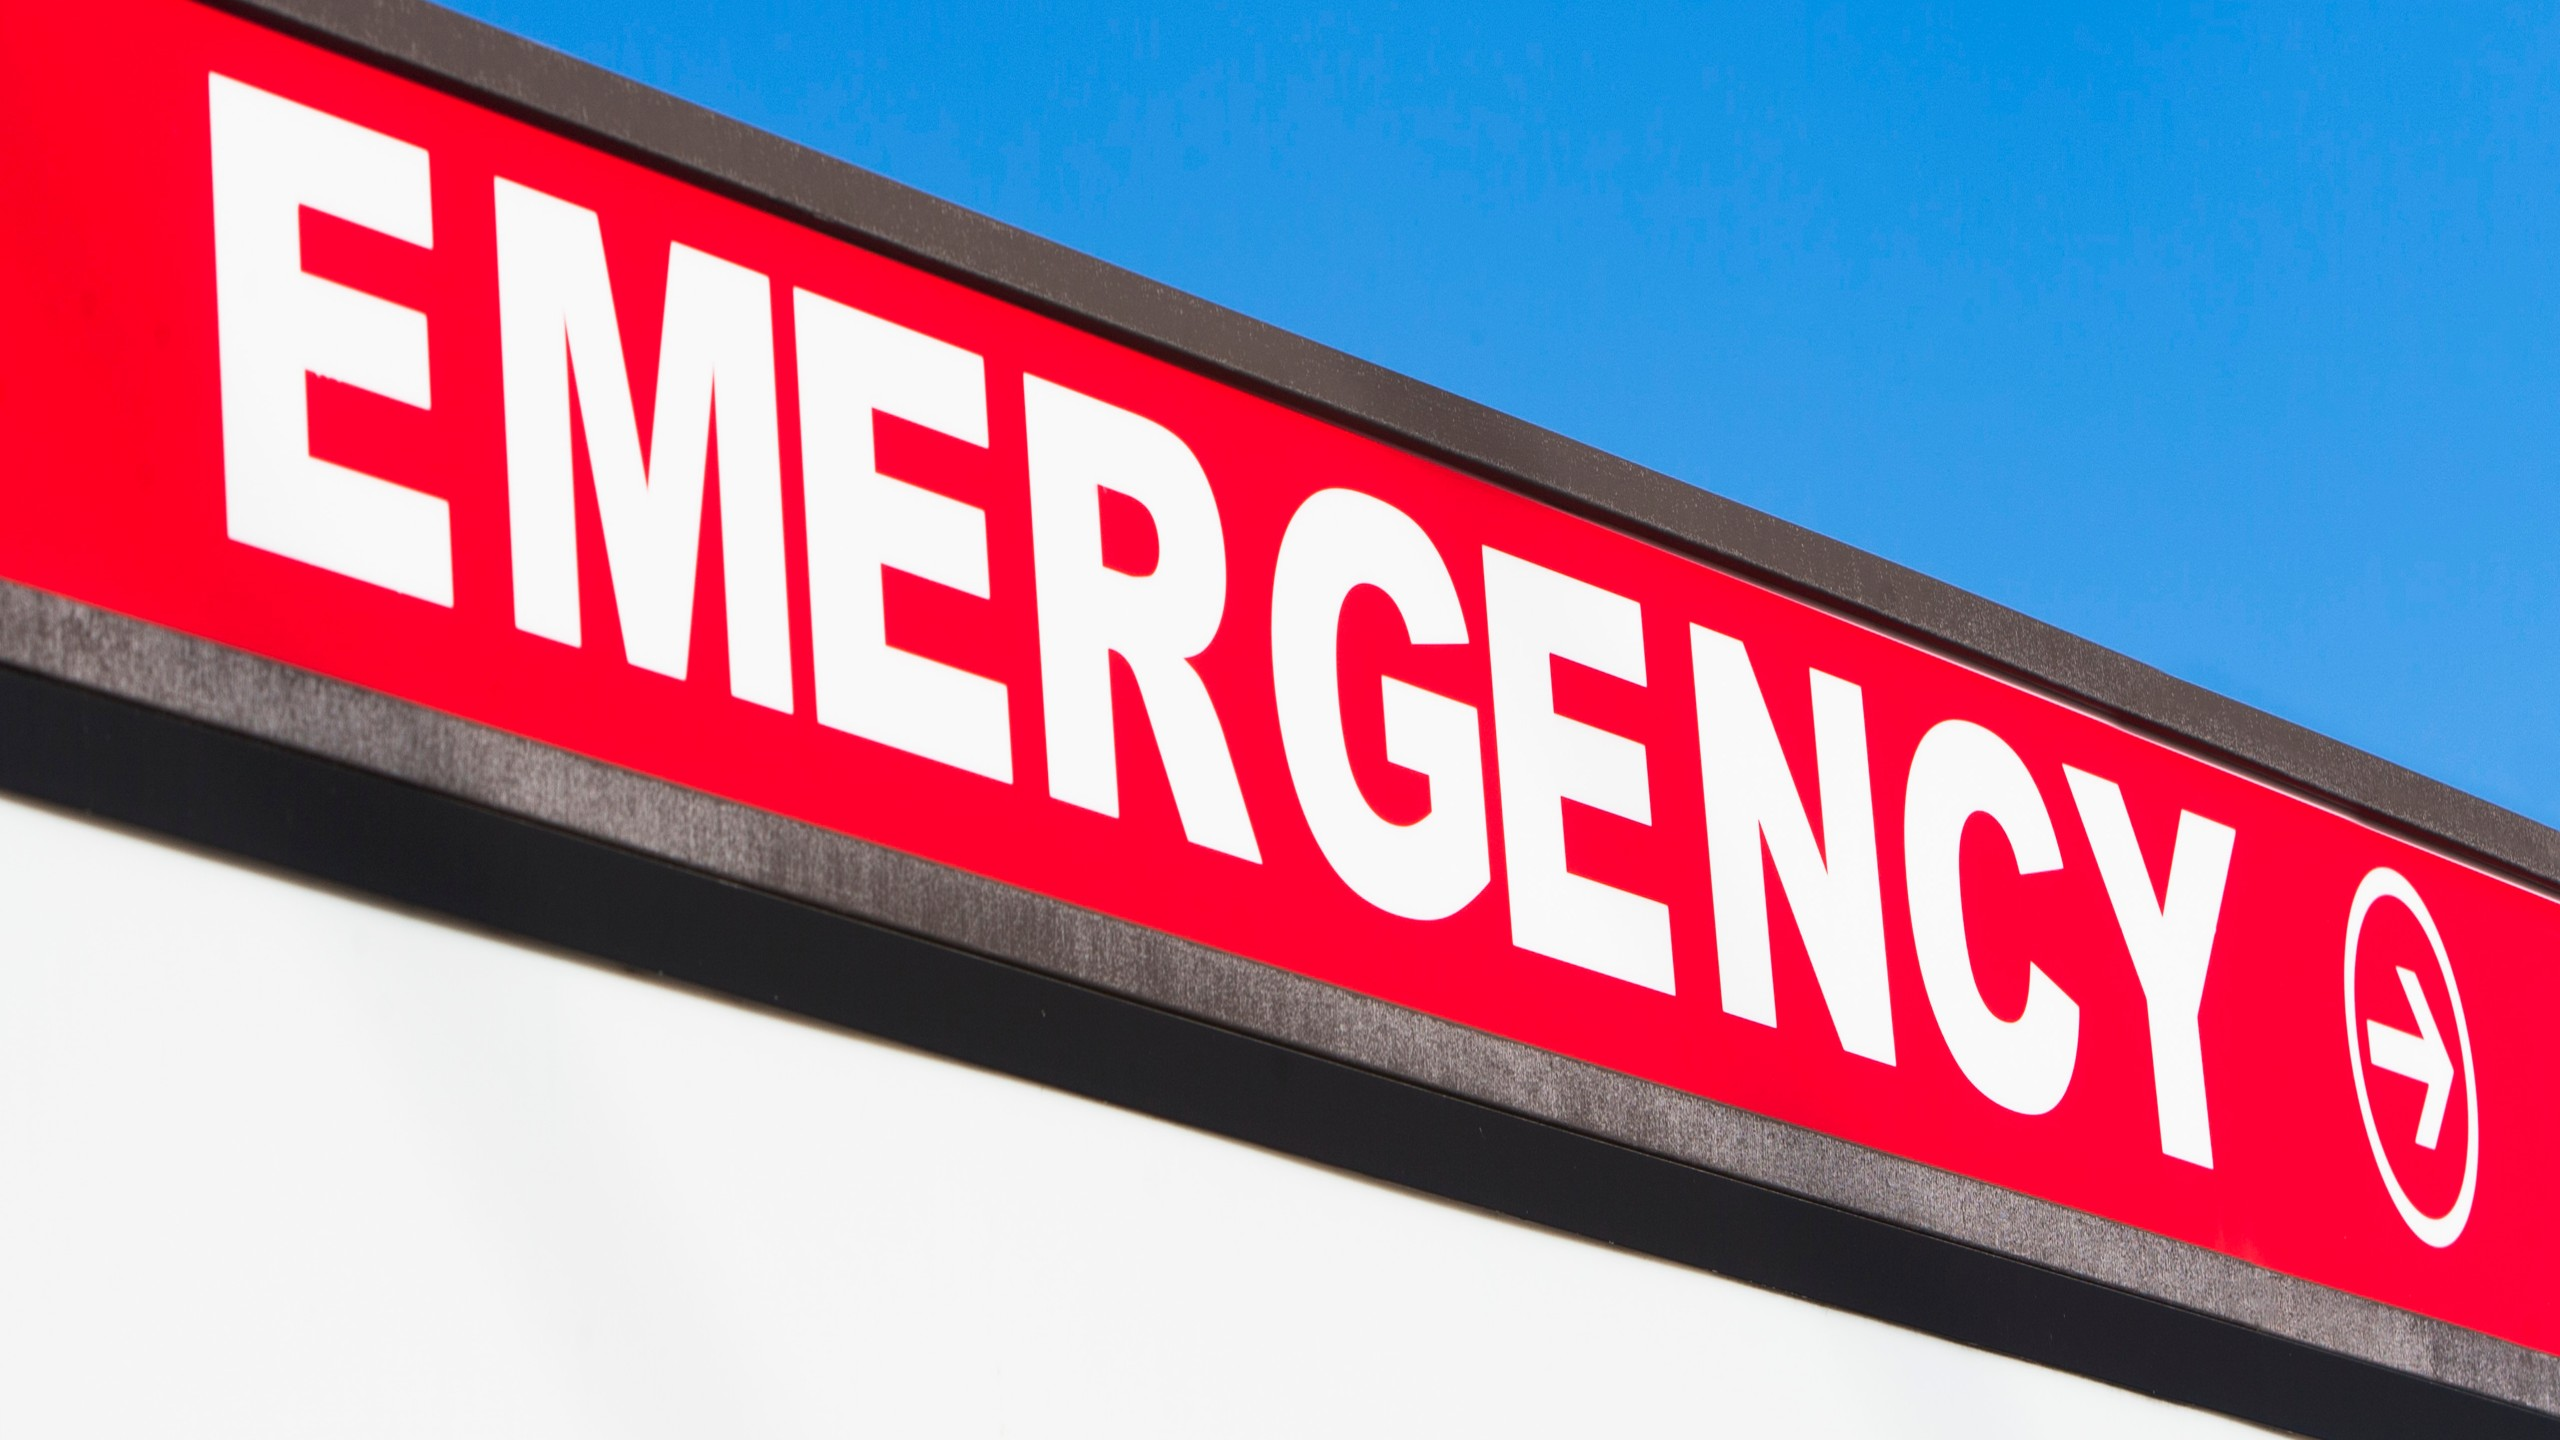 Hospital emergency sign, New York State, USA_156952